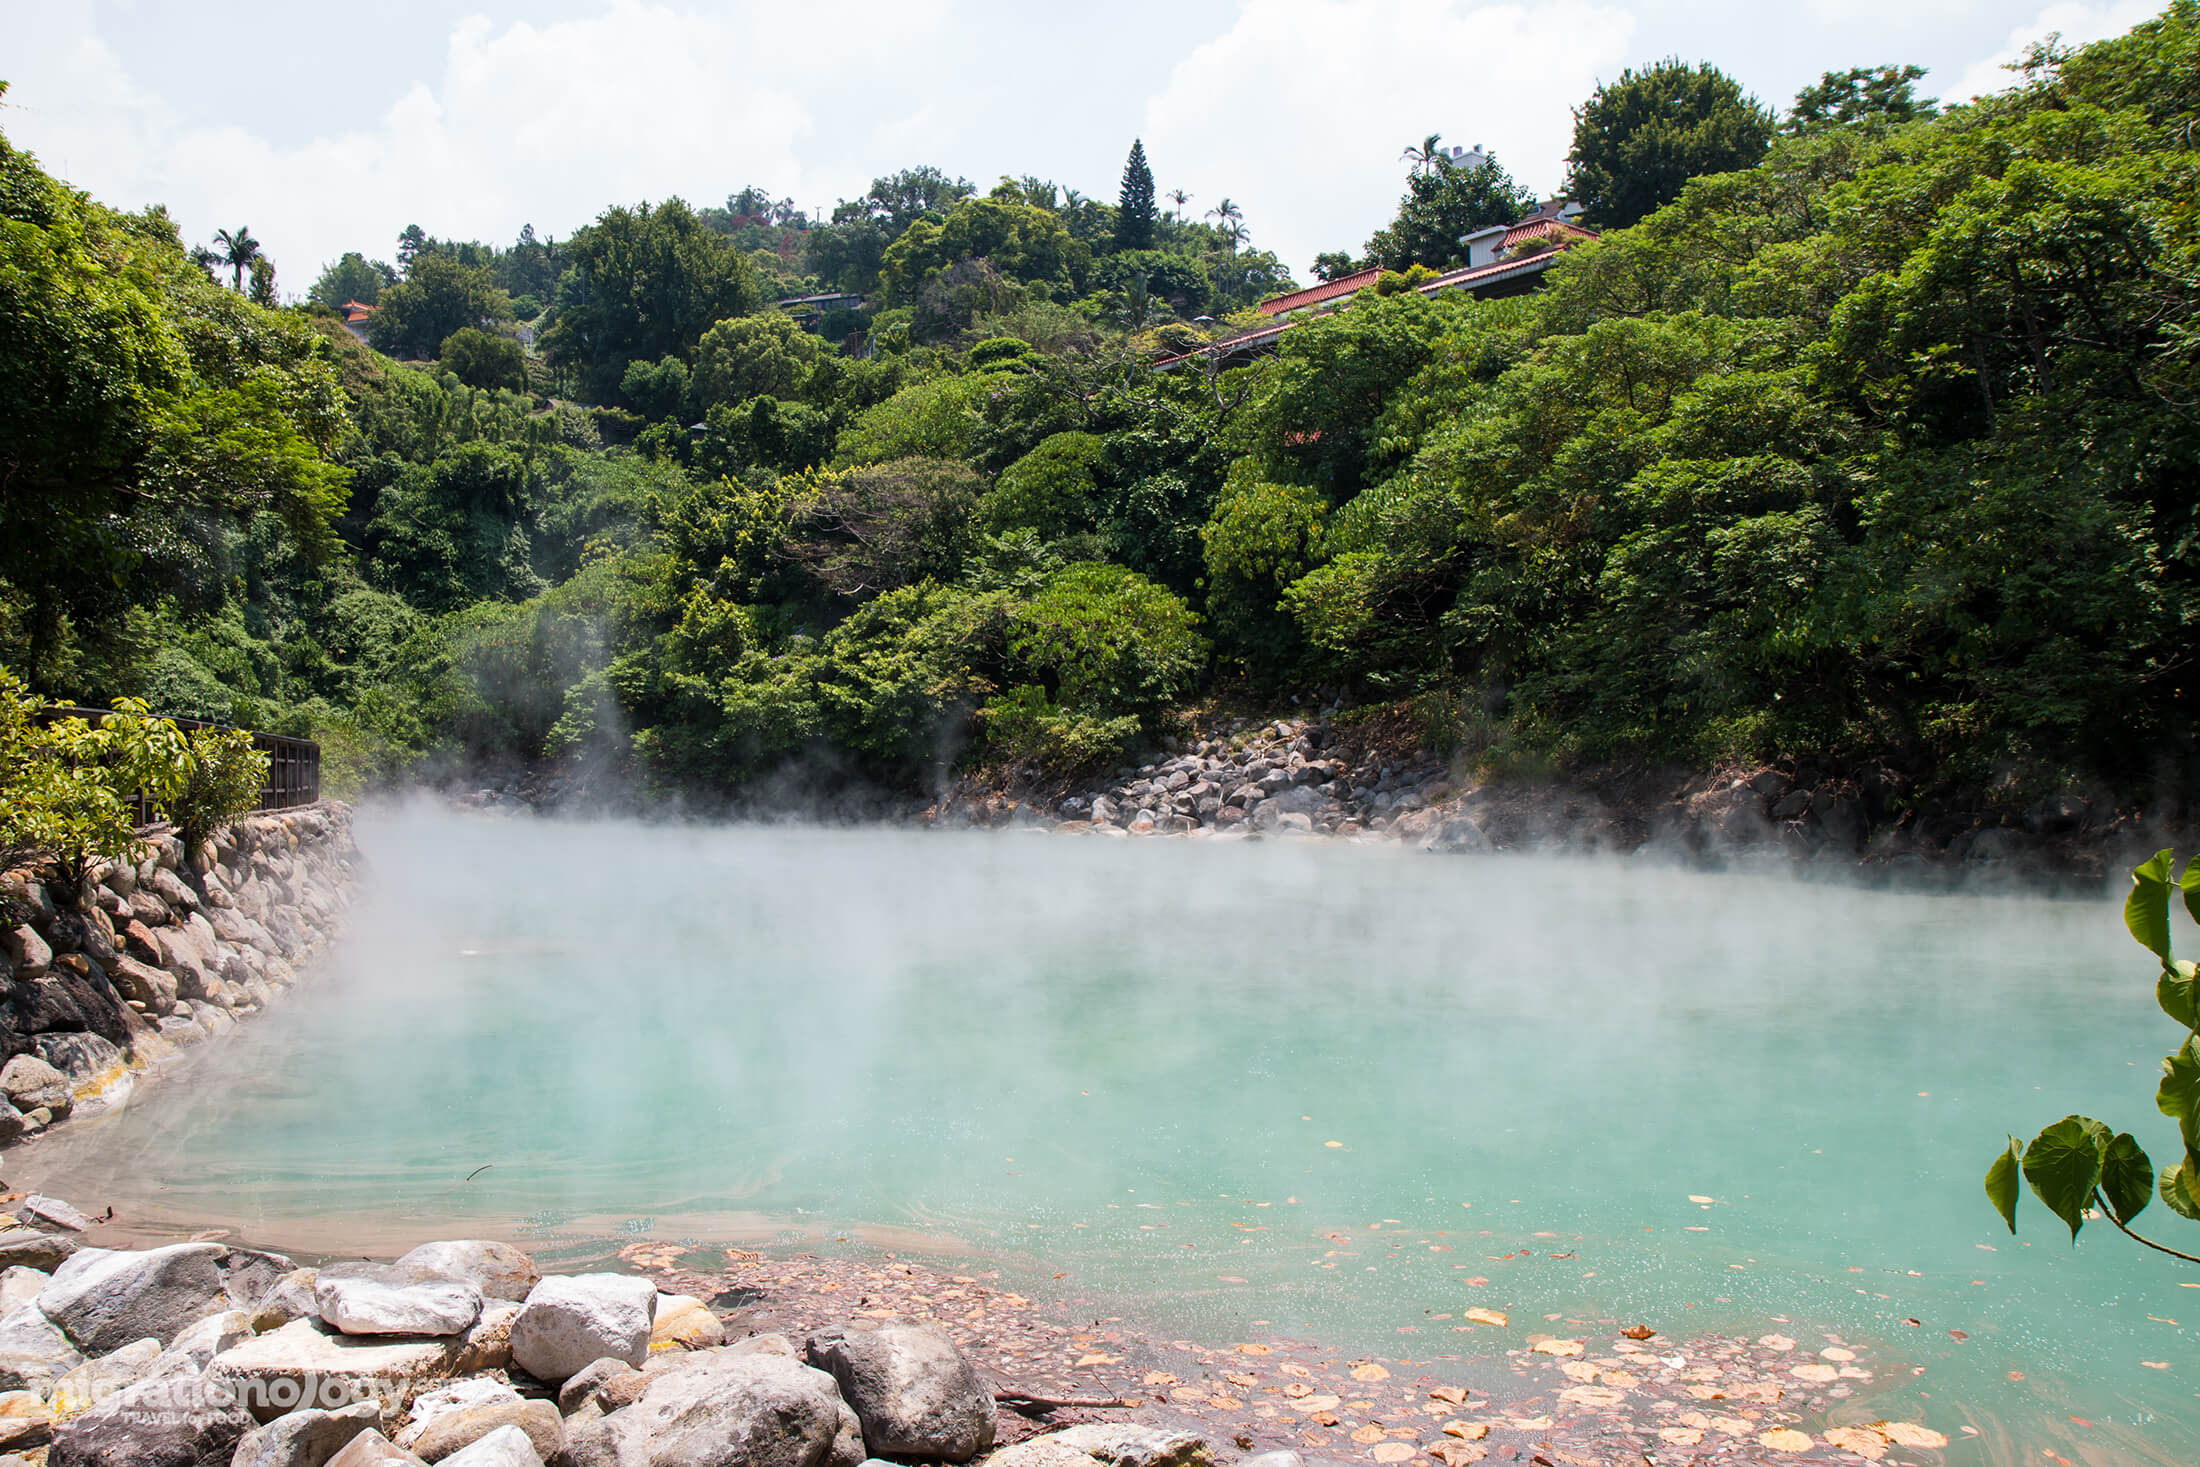 hot springs national park mature personals Meet hot springs national park (arkansas) women for online dating contact american girls without registration and payment you may email, chat, sms or call hot springs national park ladies.